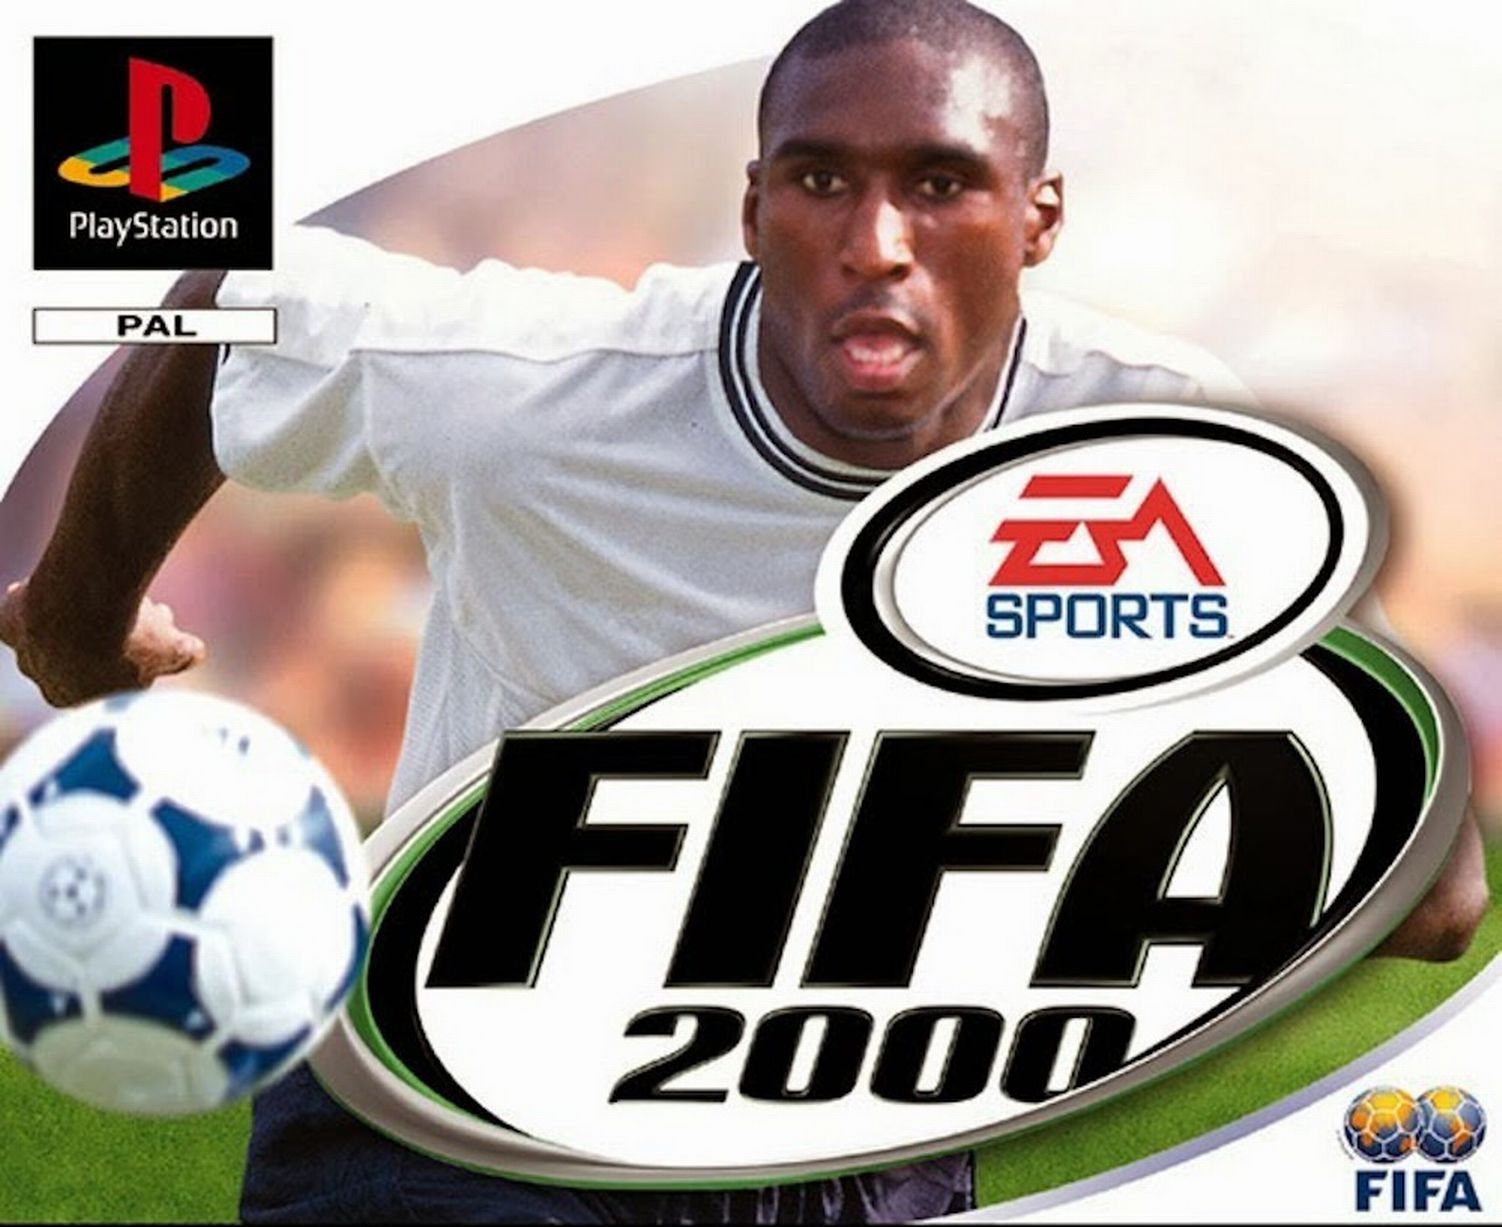 FIFA 2000 Cover FIFA Games Evolution From 94 2020